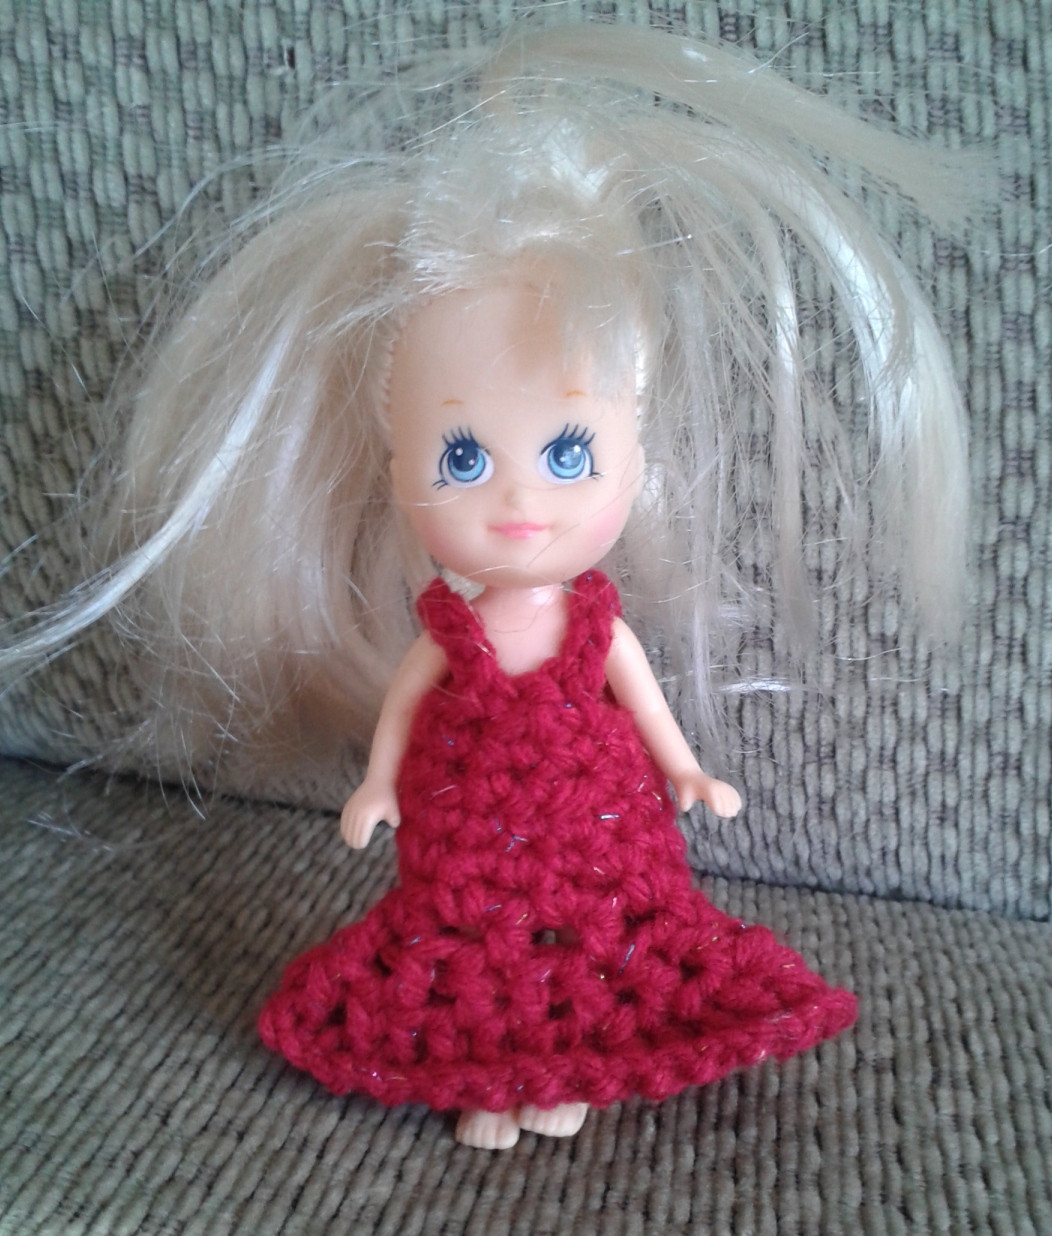 Doll Patterns Inspirational Small Doll Clothing Free Patterns Of Charming 50 Models Doll Patterns